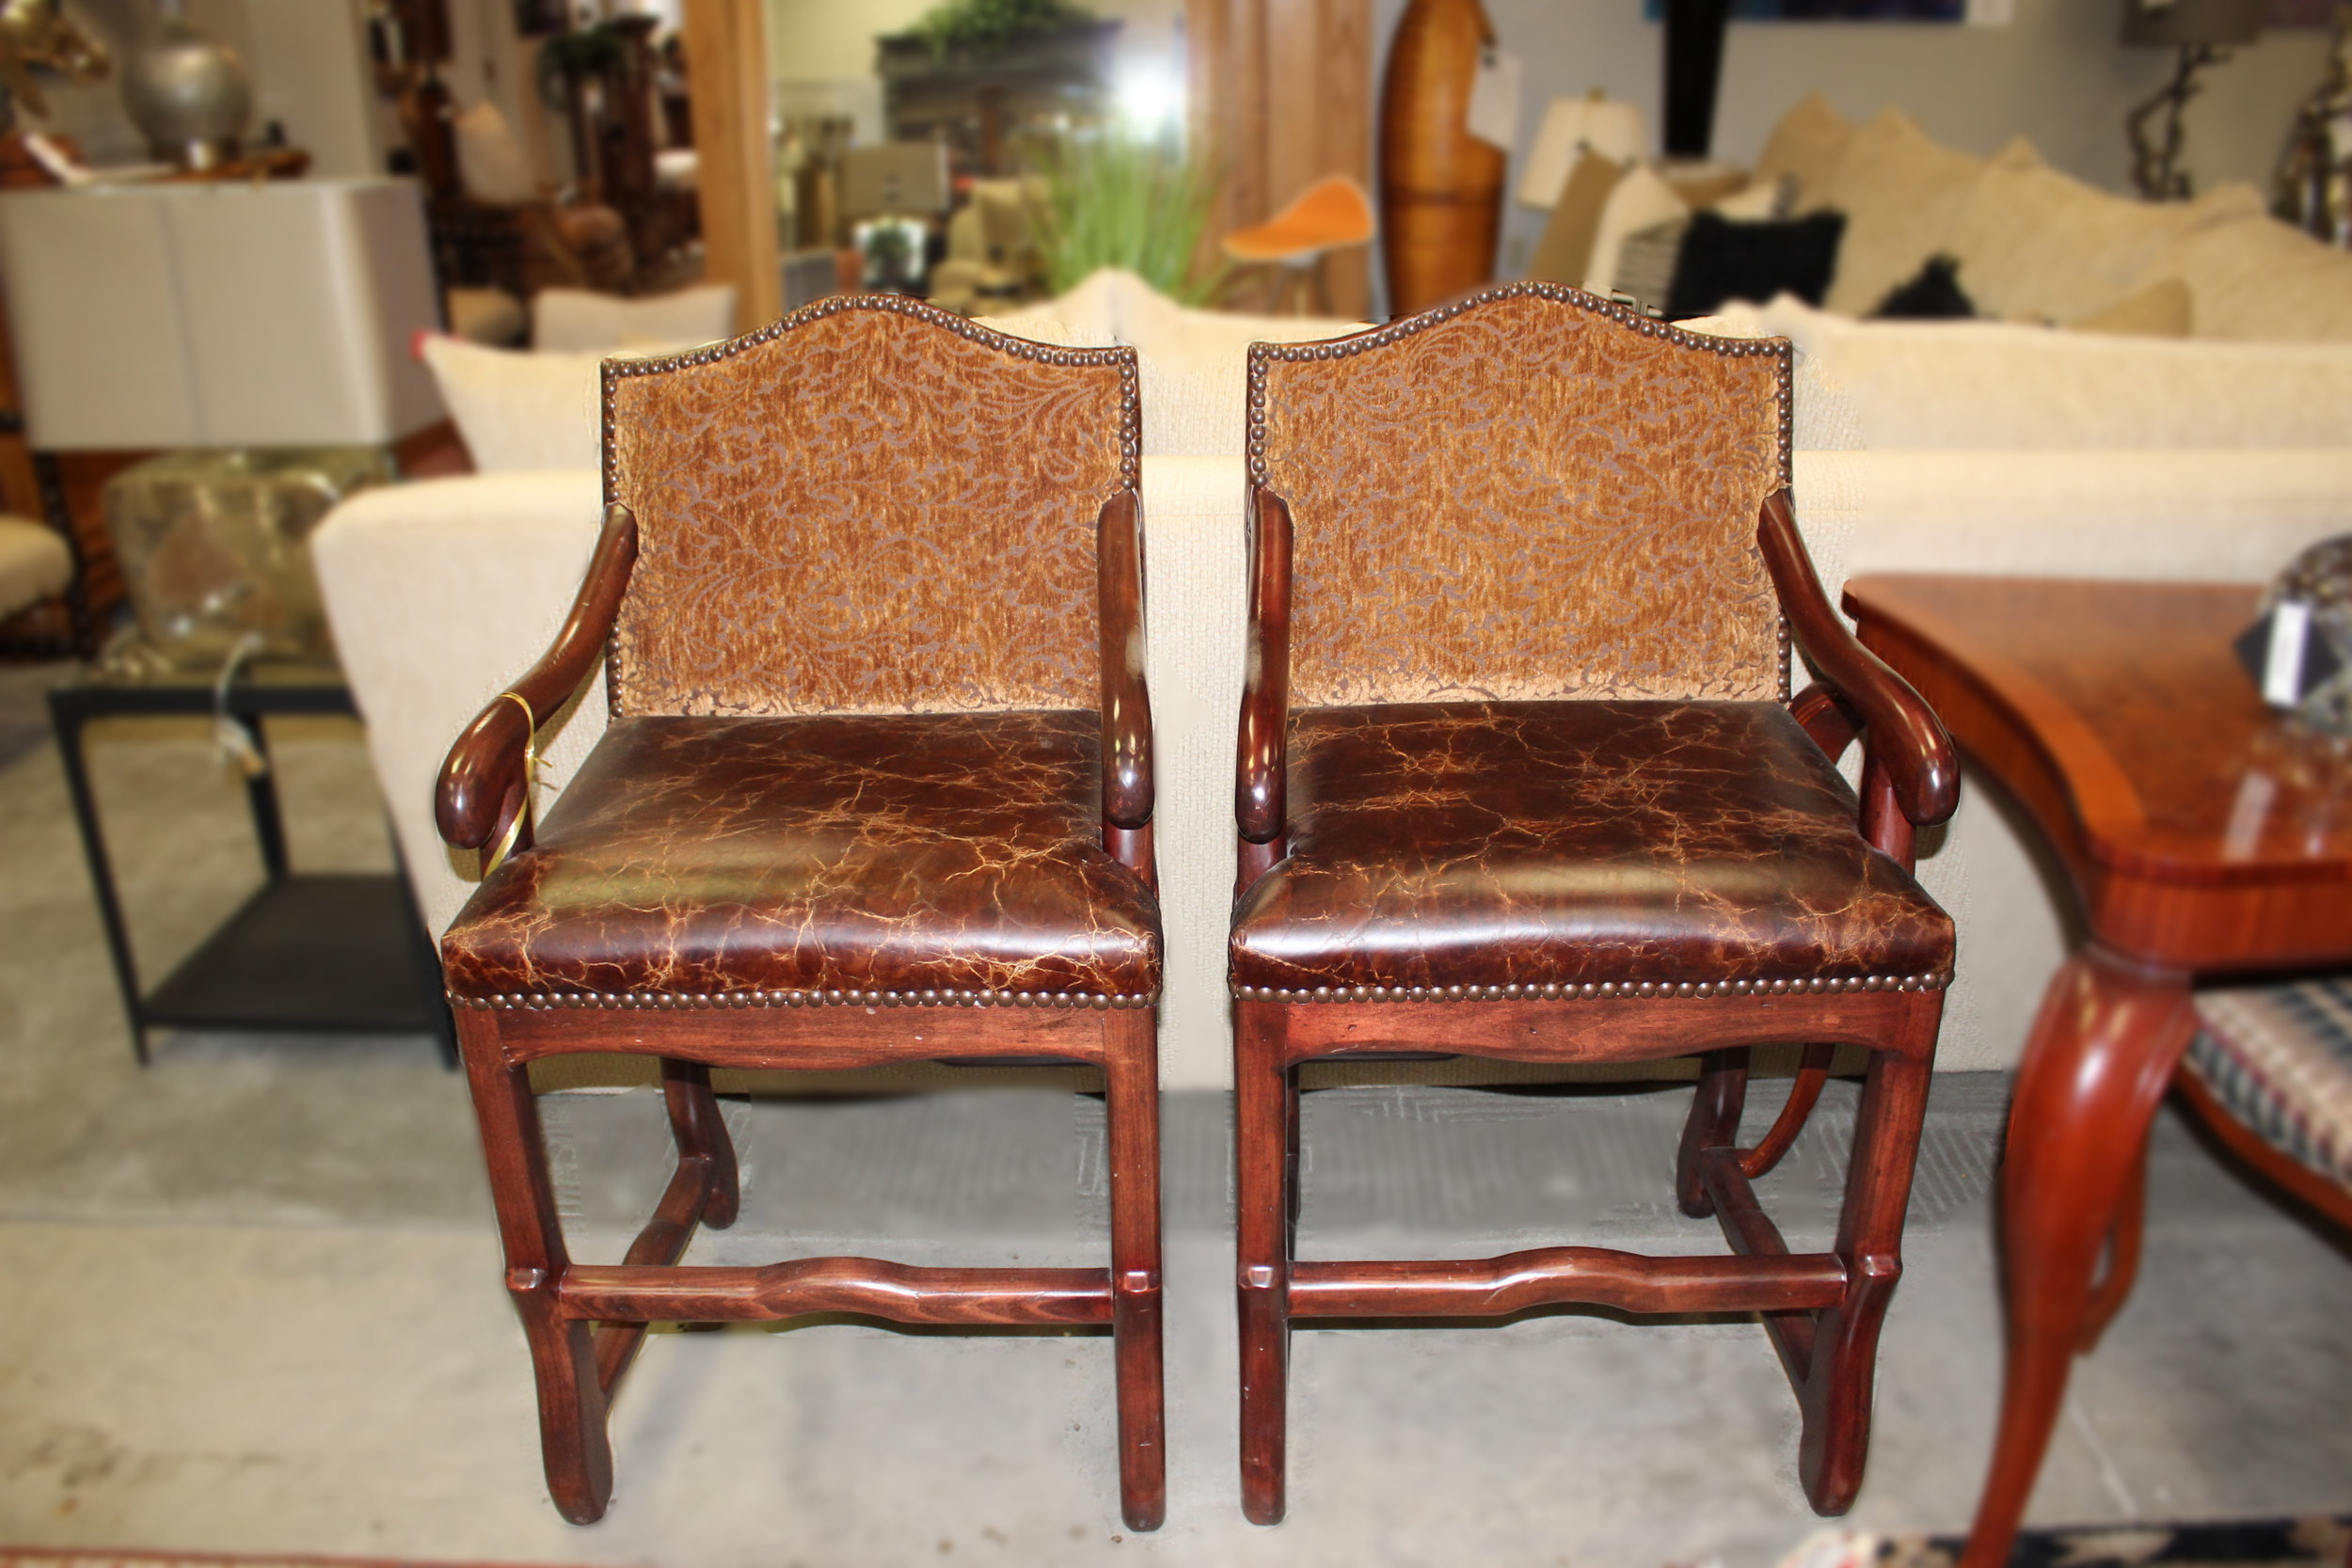 Pair of Distressed Leather Barstools